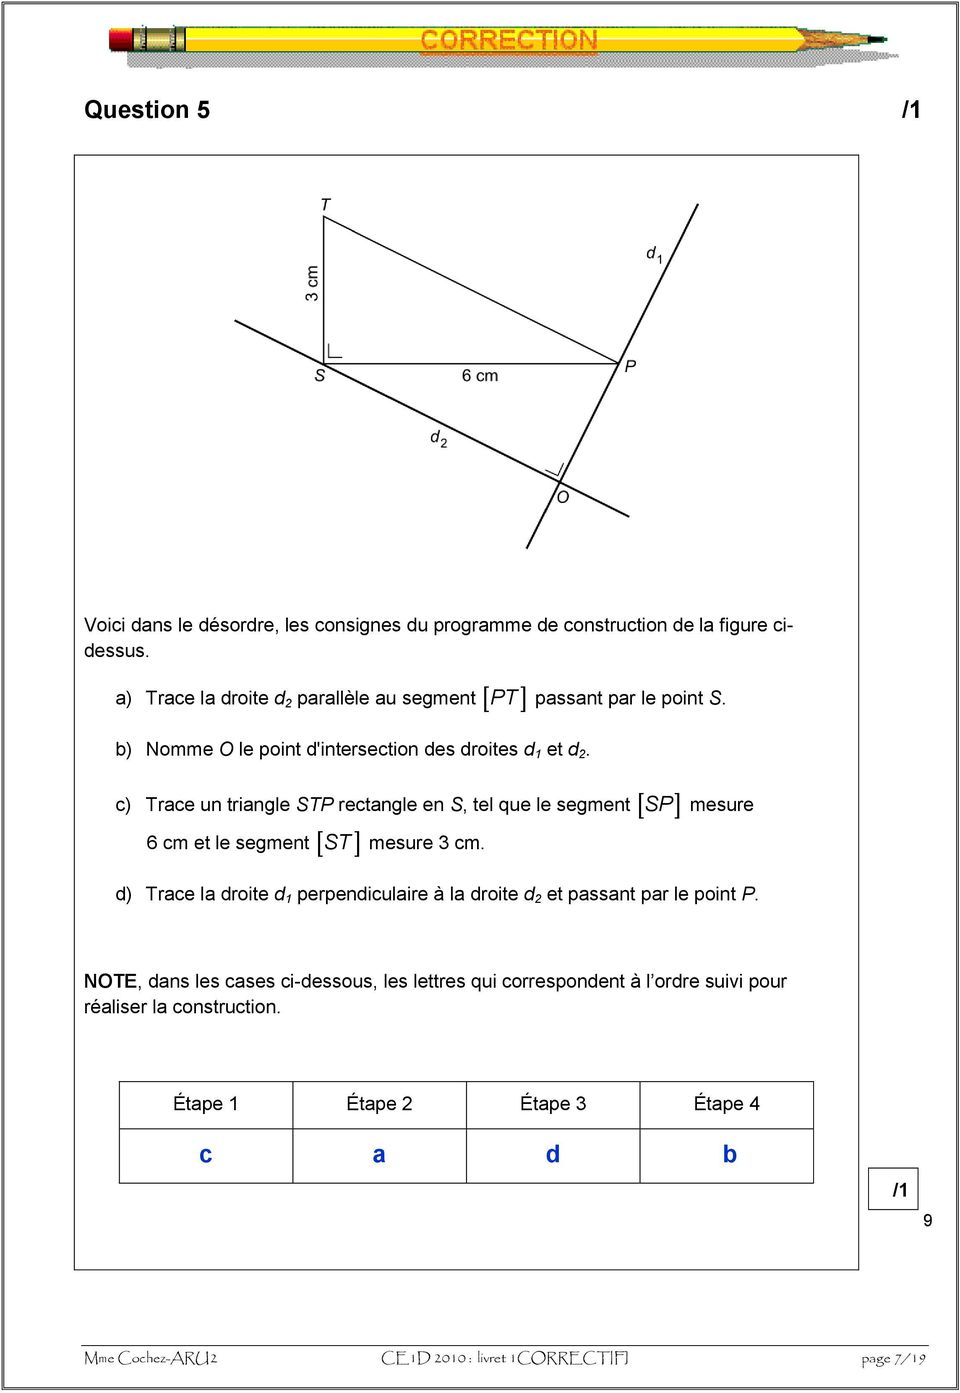 c) Trace un triangle STP rectangle en S, tel que le segment SP mesure 6 cm et le segment ST mesure cm.